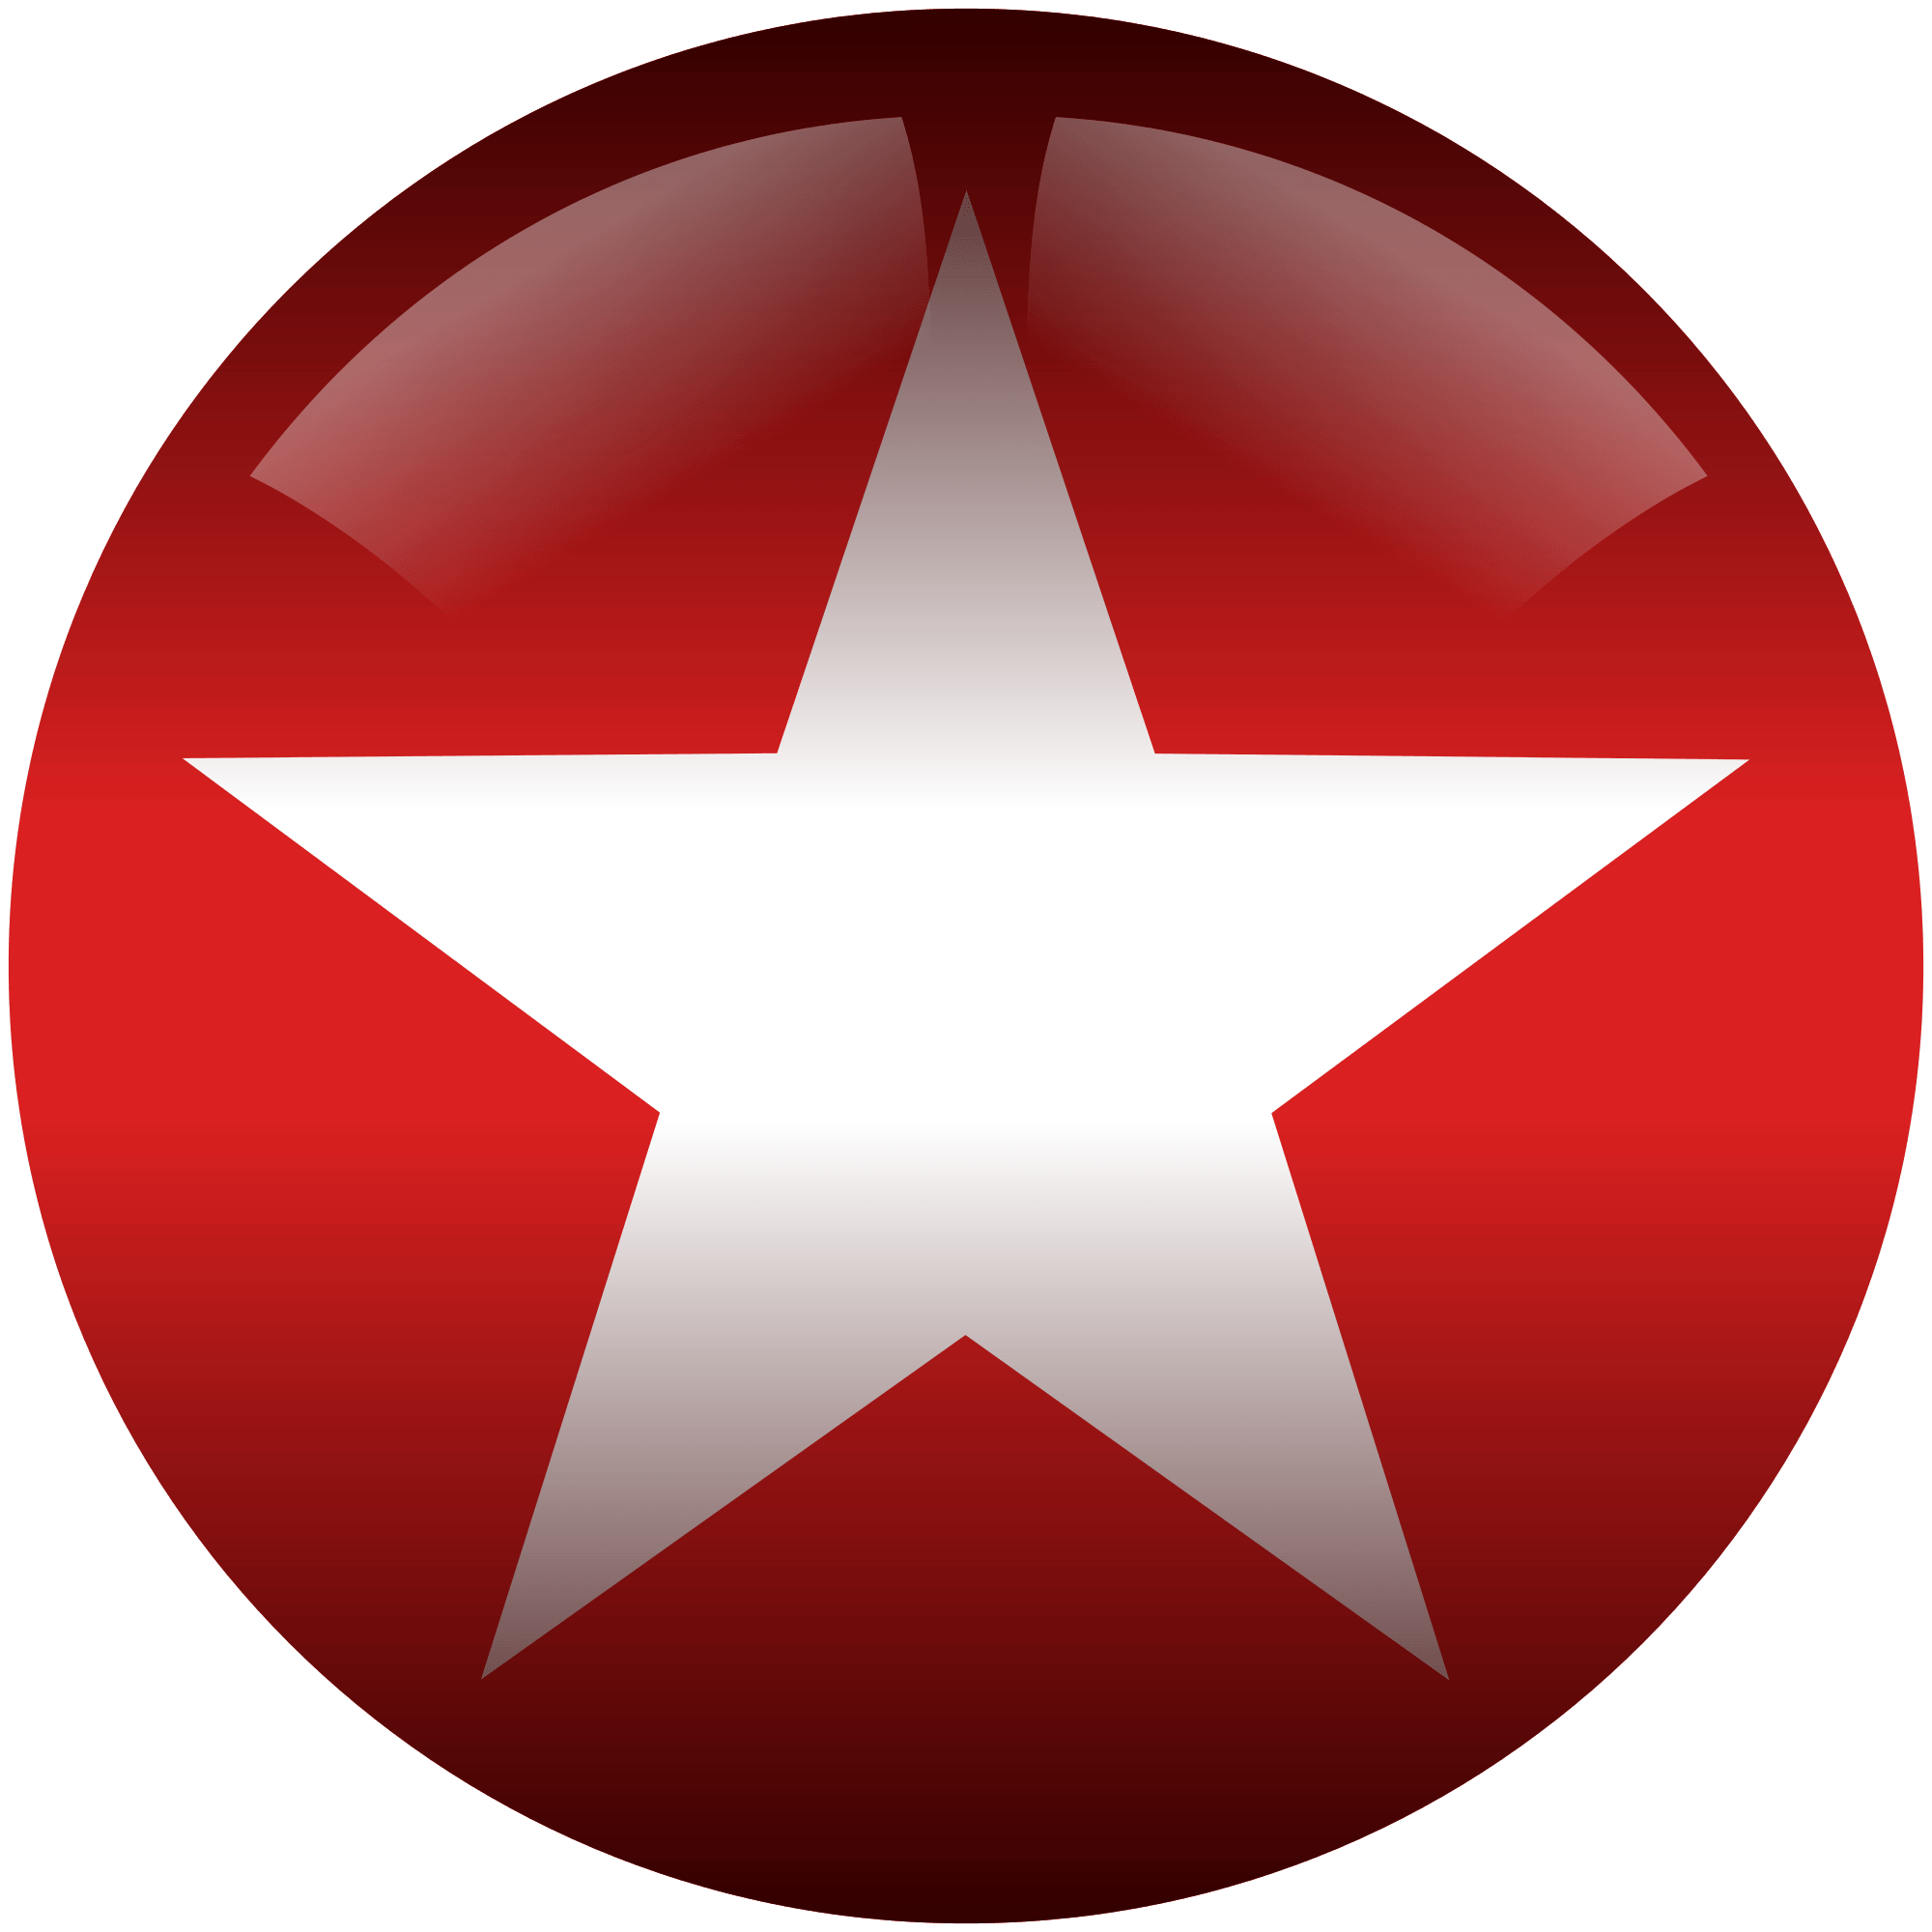 Star Symbol in Circle Logo - File:White star in red circle.svg - Wikimedia Commons